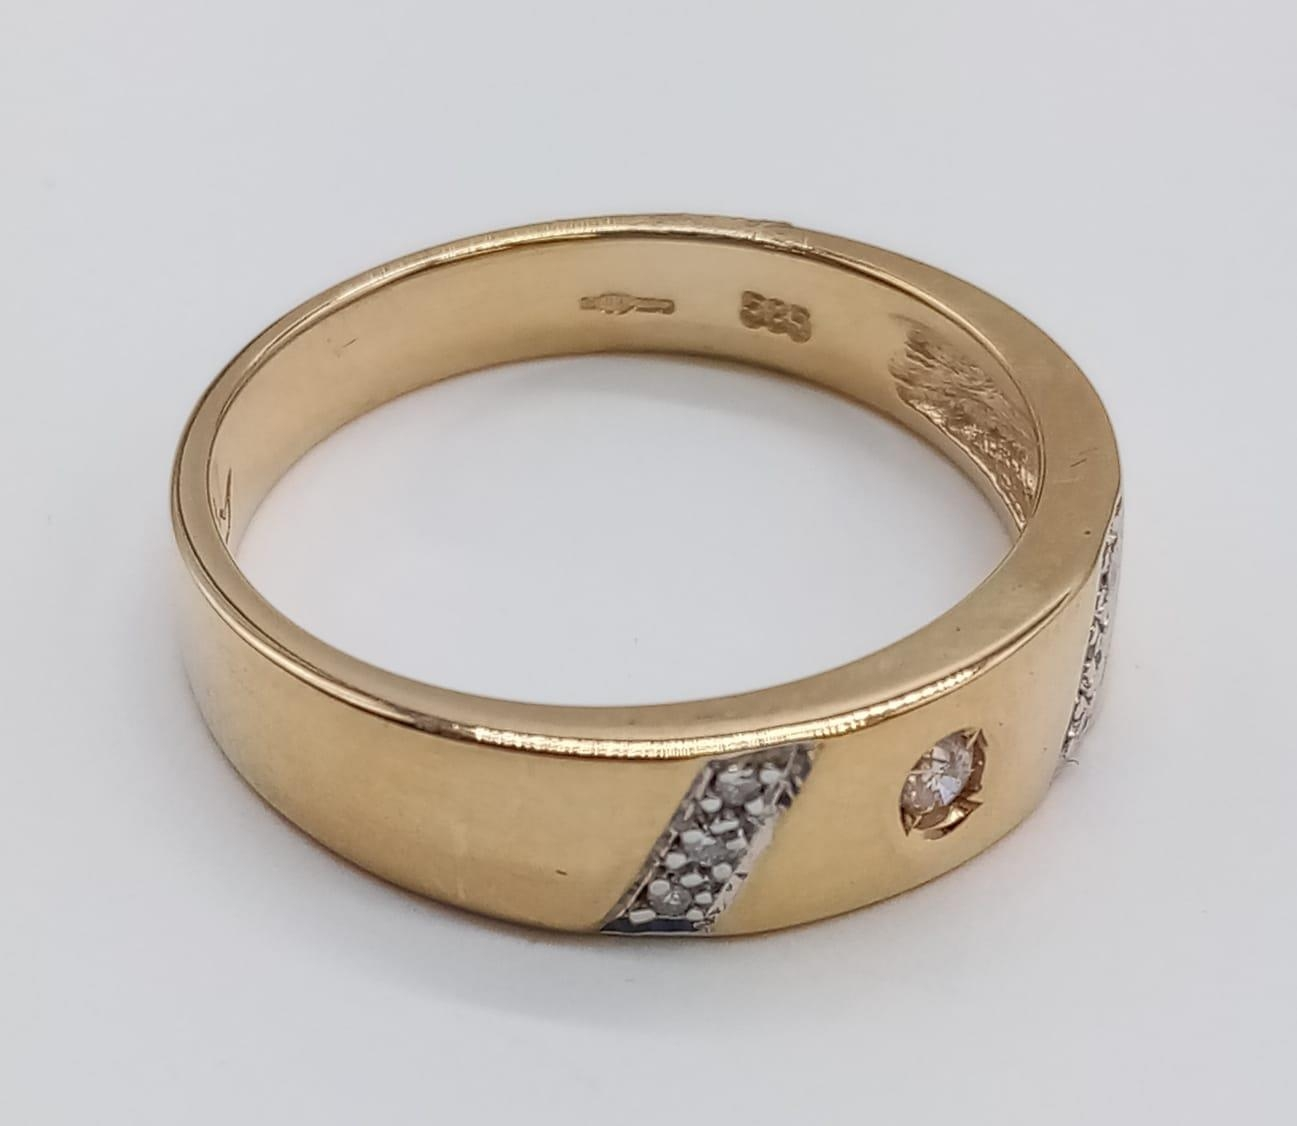 14CT Yellow gold DIAMOND SET BAND RING, weight 3.9G and size P - Image 2 of 6